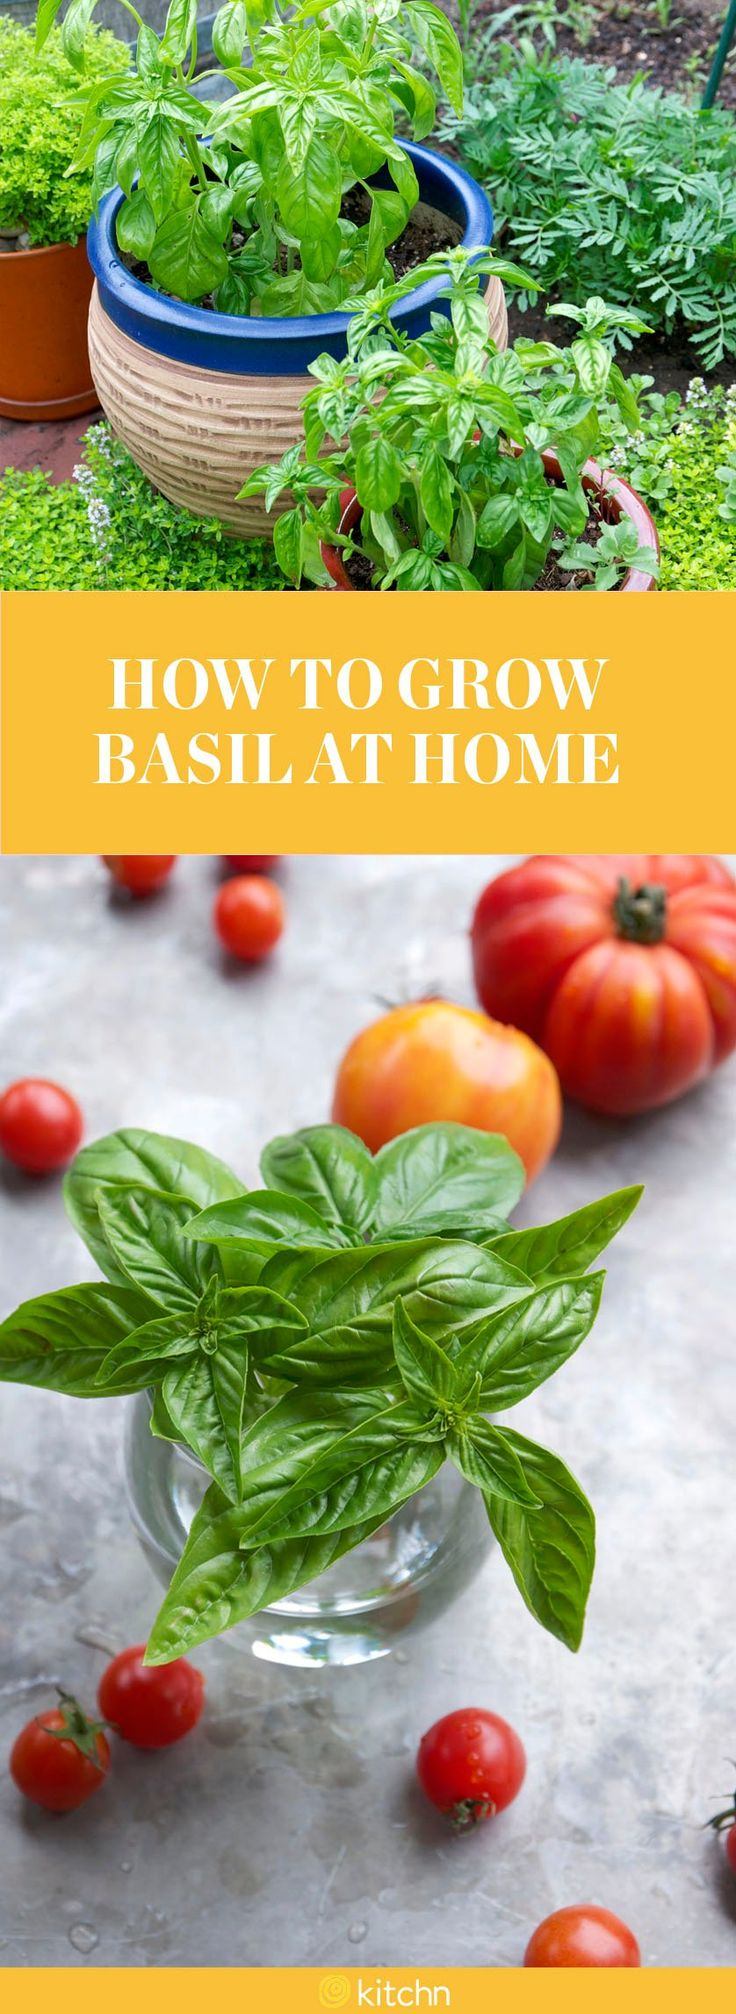 Learn how to grow basil at home. This tutorial teaches you everything you need to know about how to grow basil outdoors from the ground up. Whether it be planted, cultivated, or harvested, we've got all the tactics. Learn the basics as to how you can bring home and into your kitchen this fresh and spicy plant.